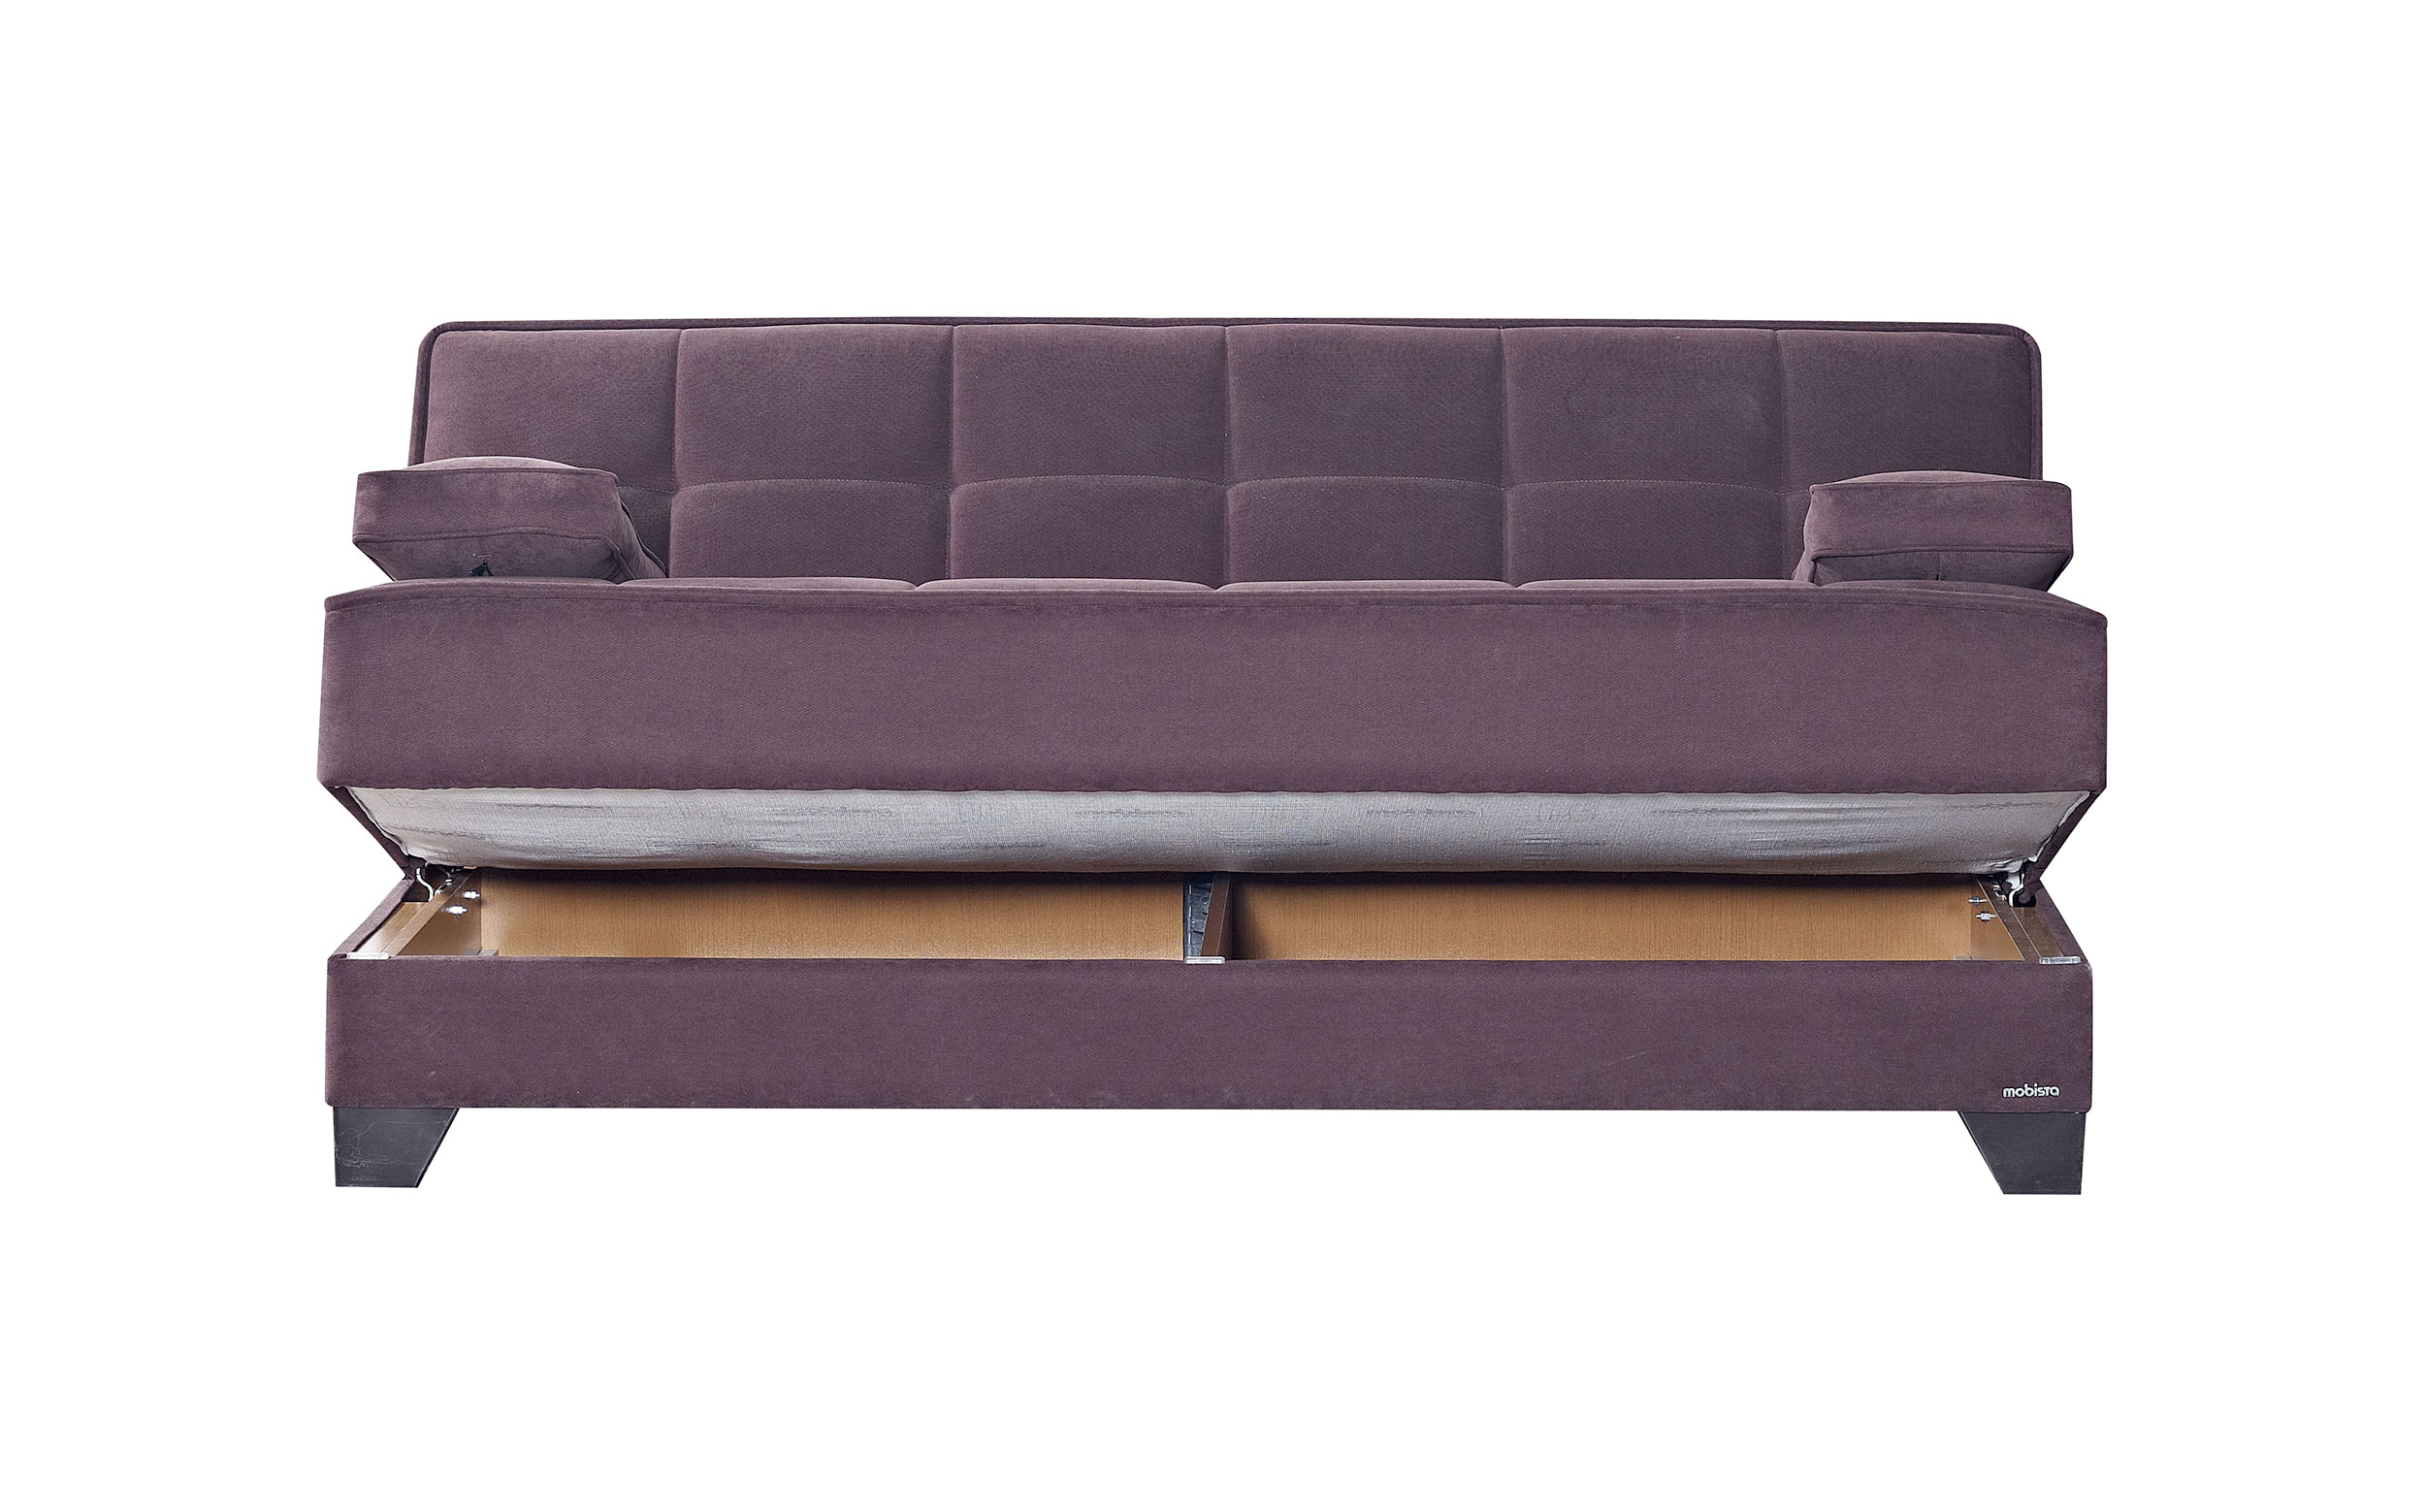 mexico futon sofa bed with mattress chocolate grey accent pillows nexo carisma by mobista